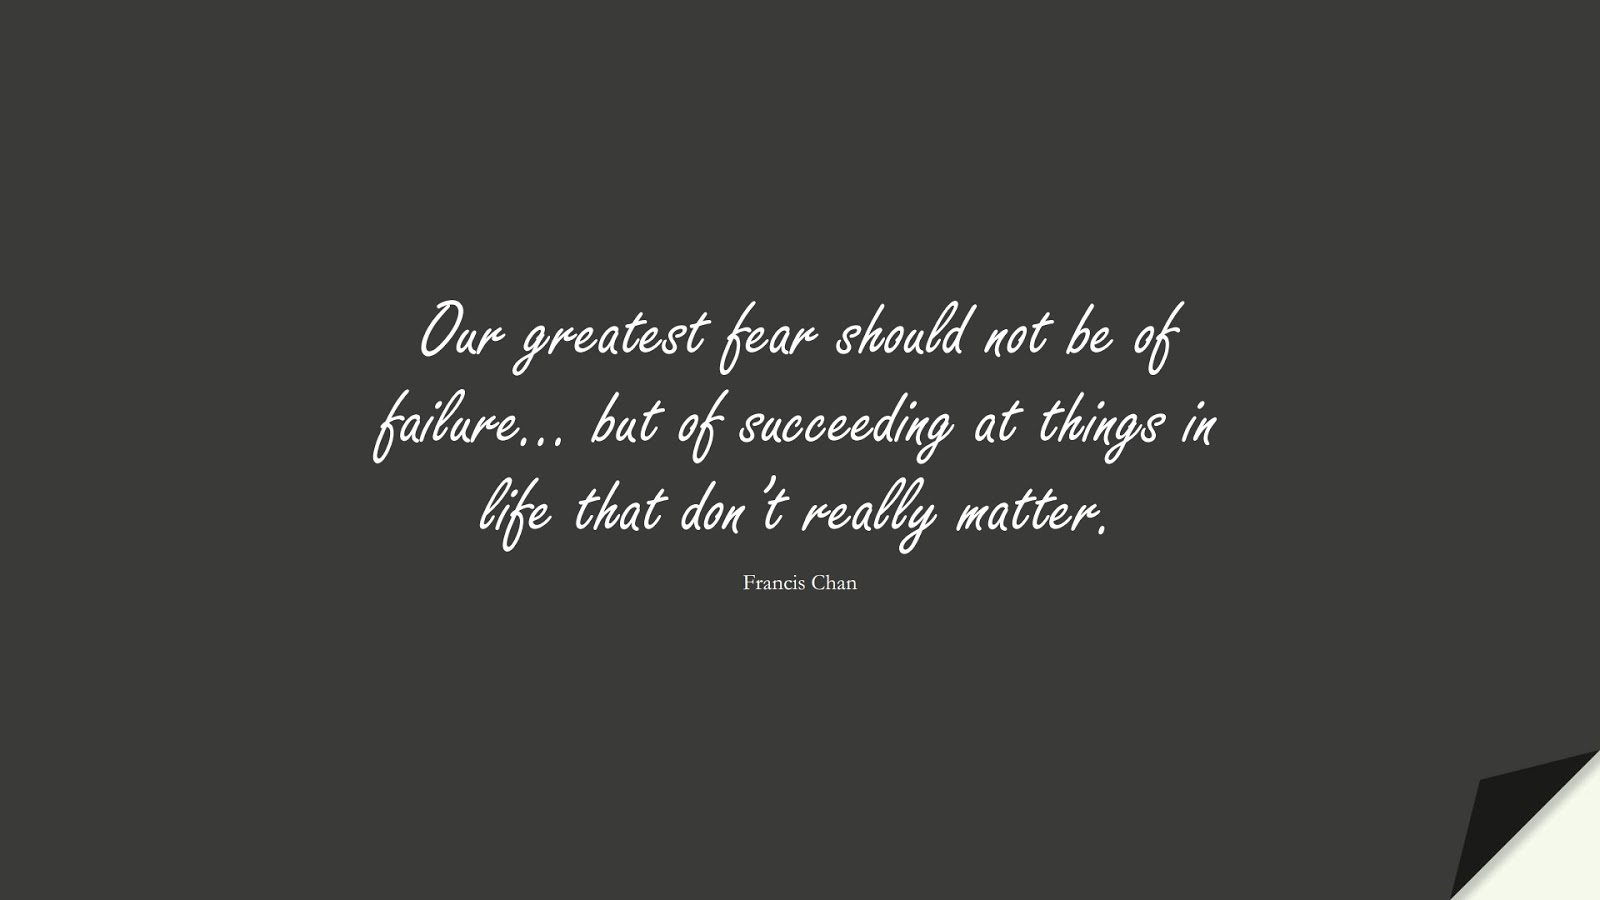 Our greatest fear should not be of failure… but of succeeding at things in life that don't really matter. (Francis Chan);  #InspirationalQuotes